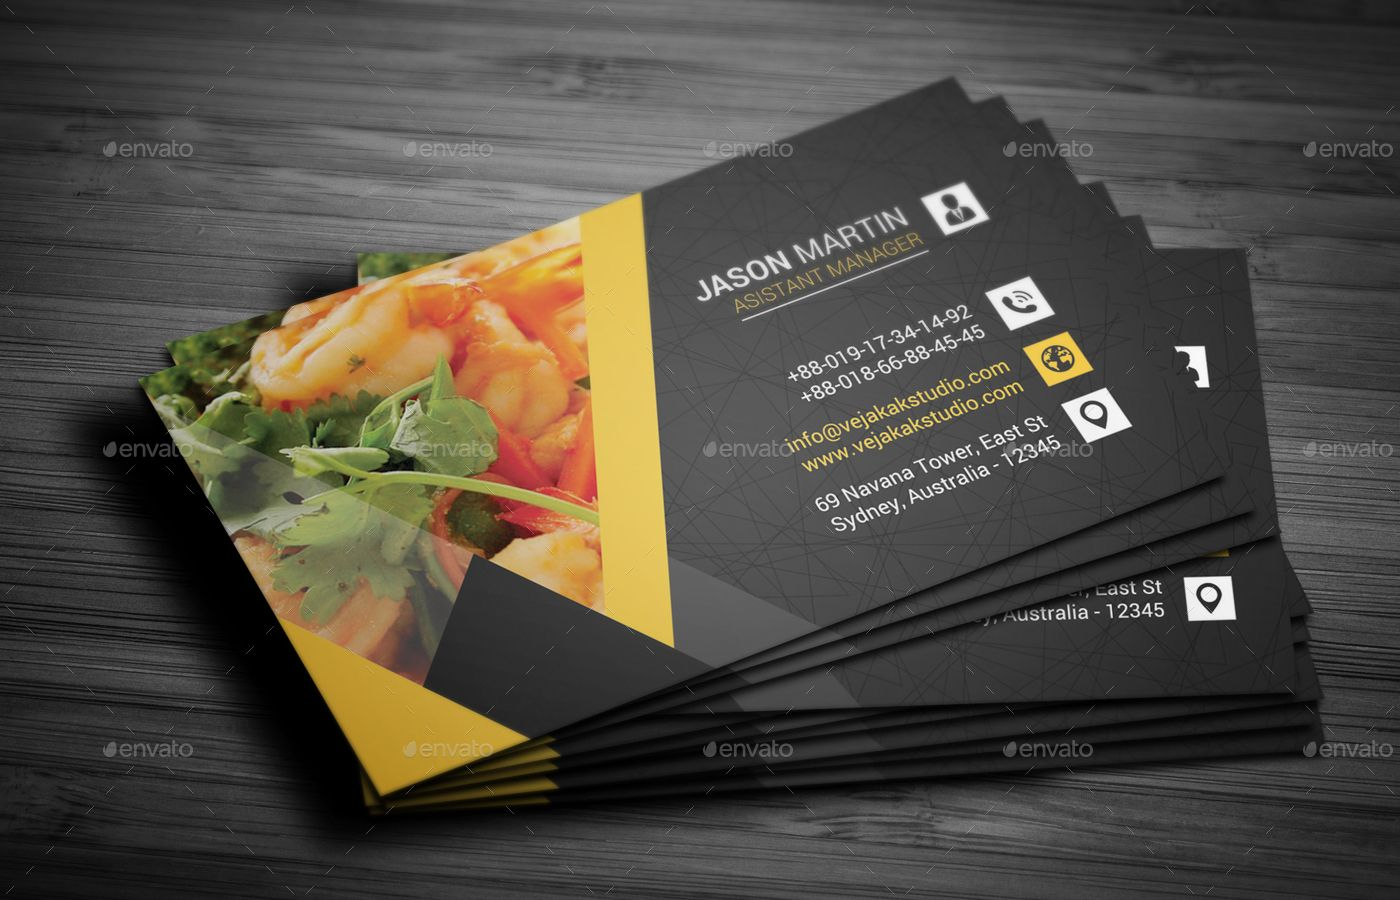 Restaurant Business Card With Images Food Business Card